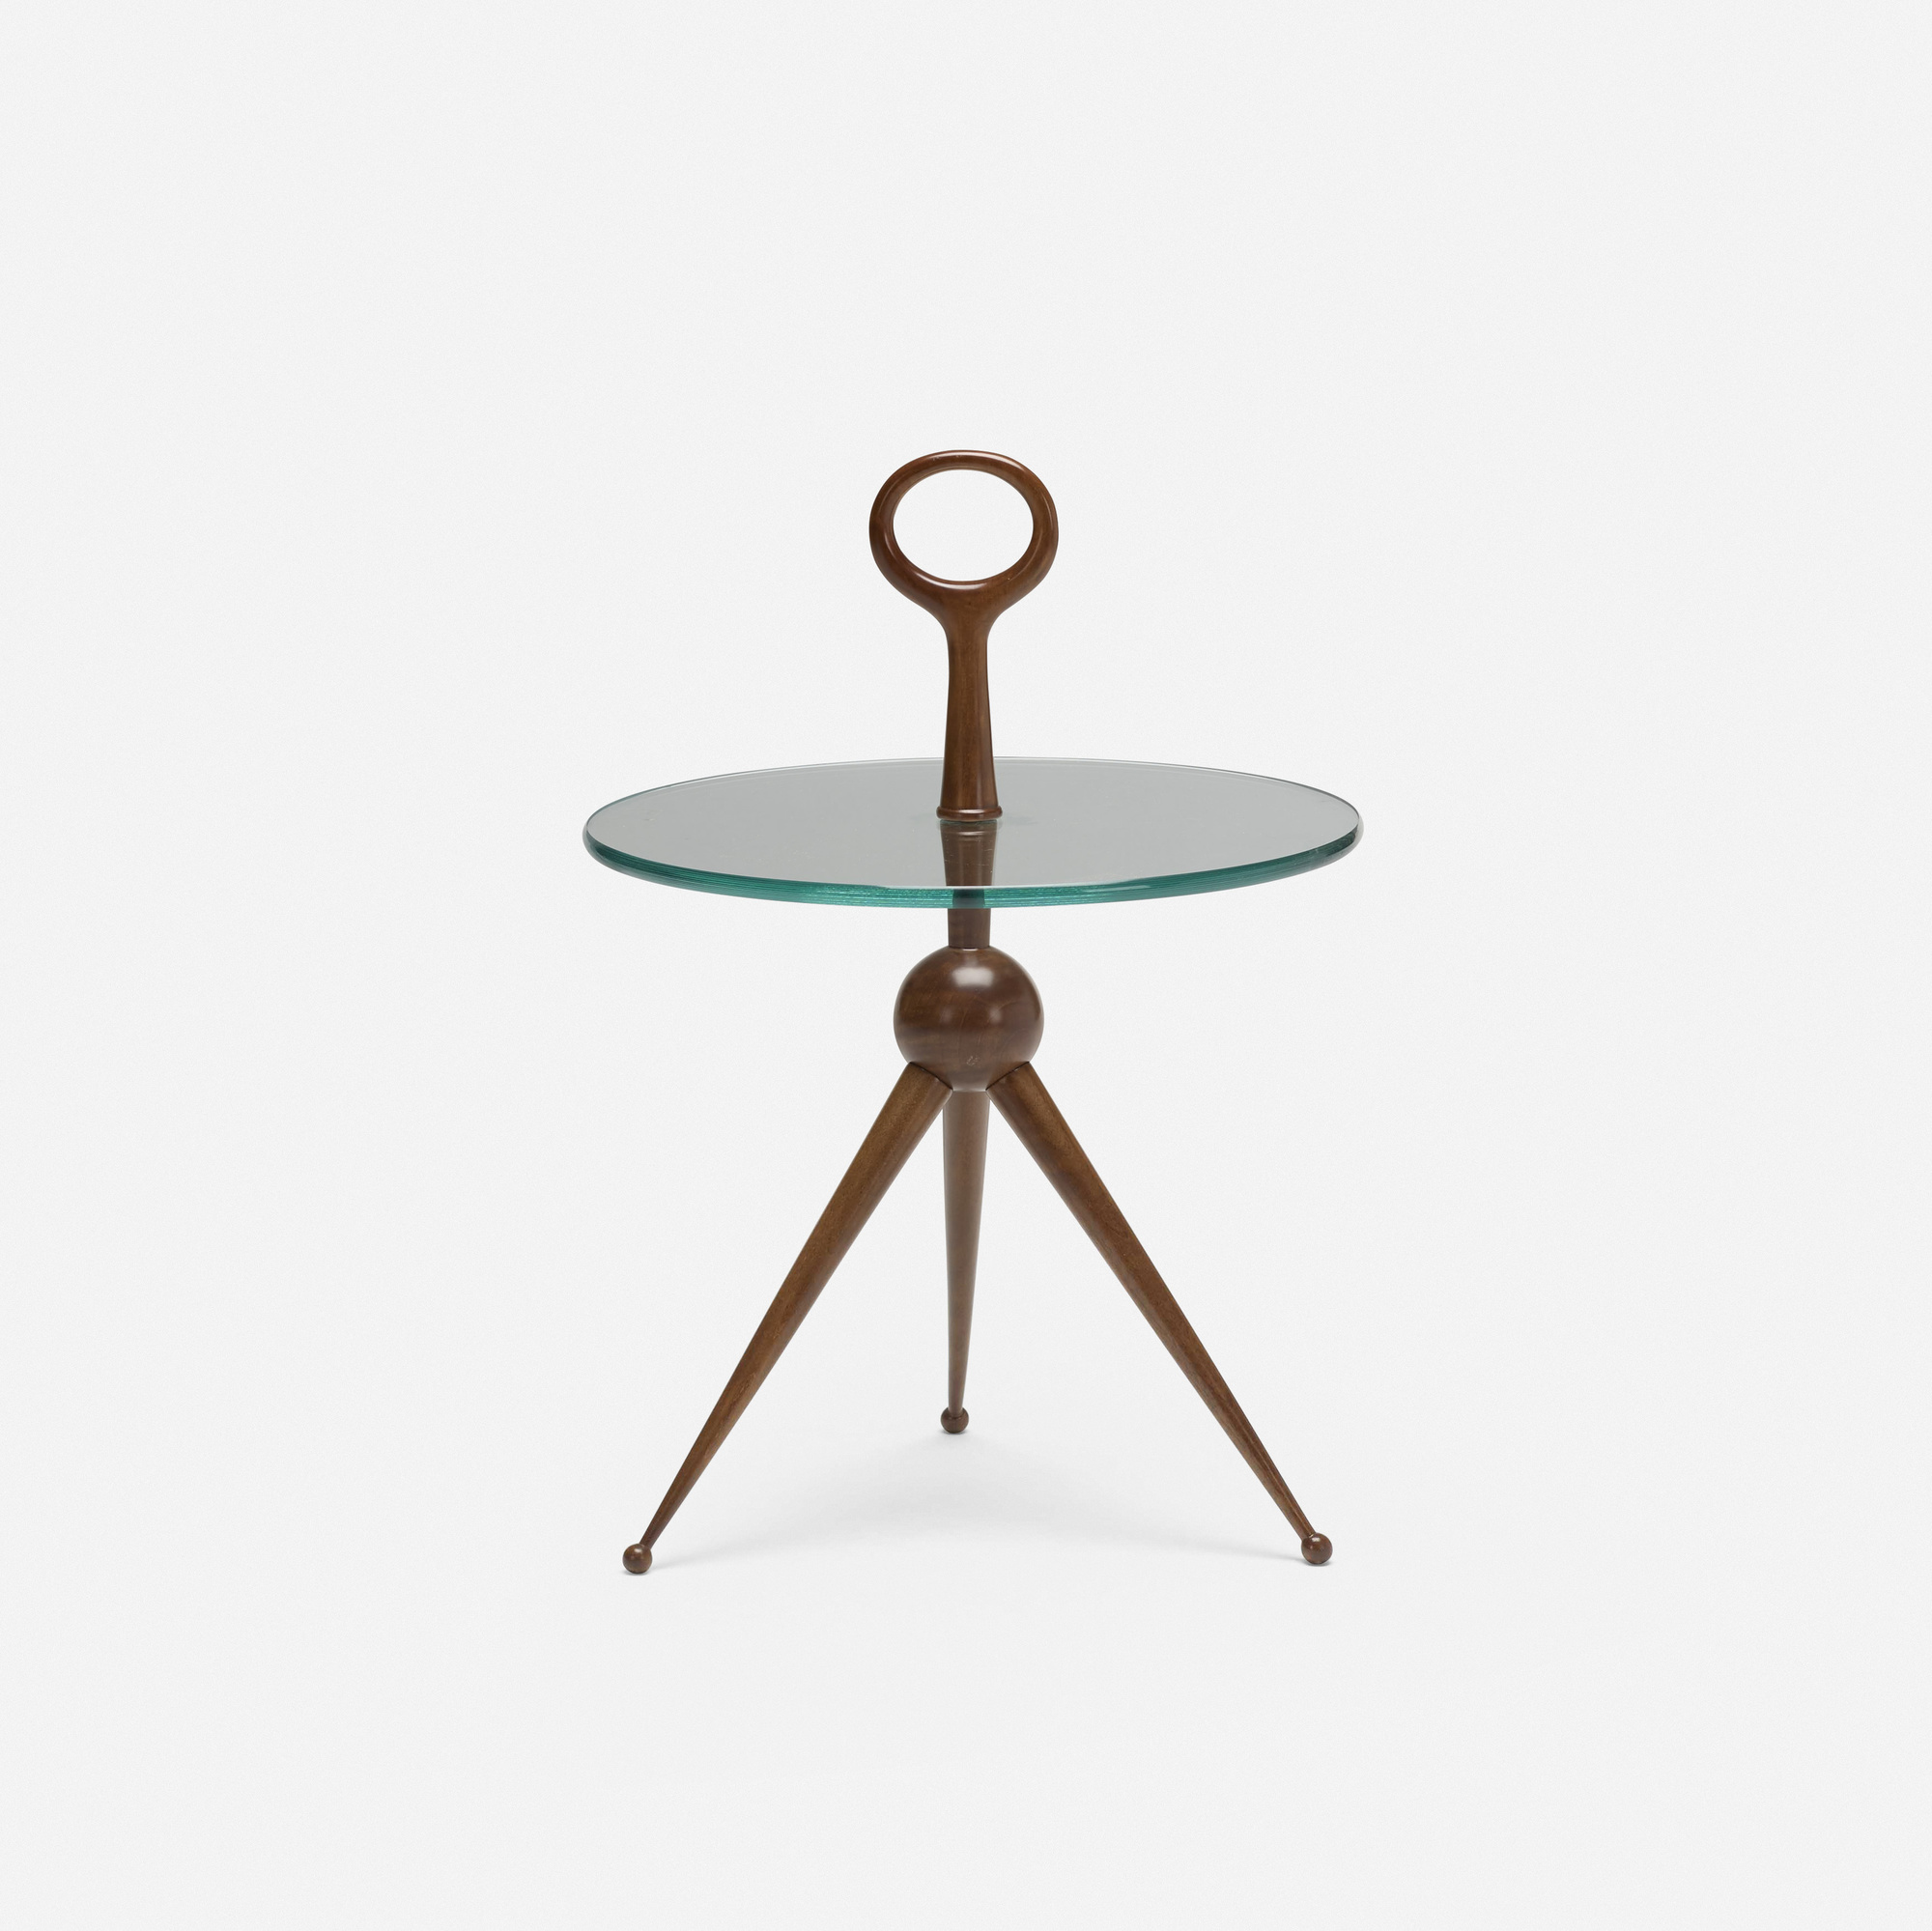 370: Italian / occasional table (1 of 2)